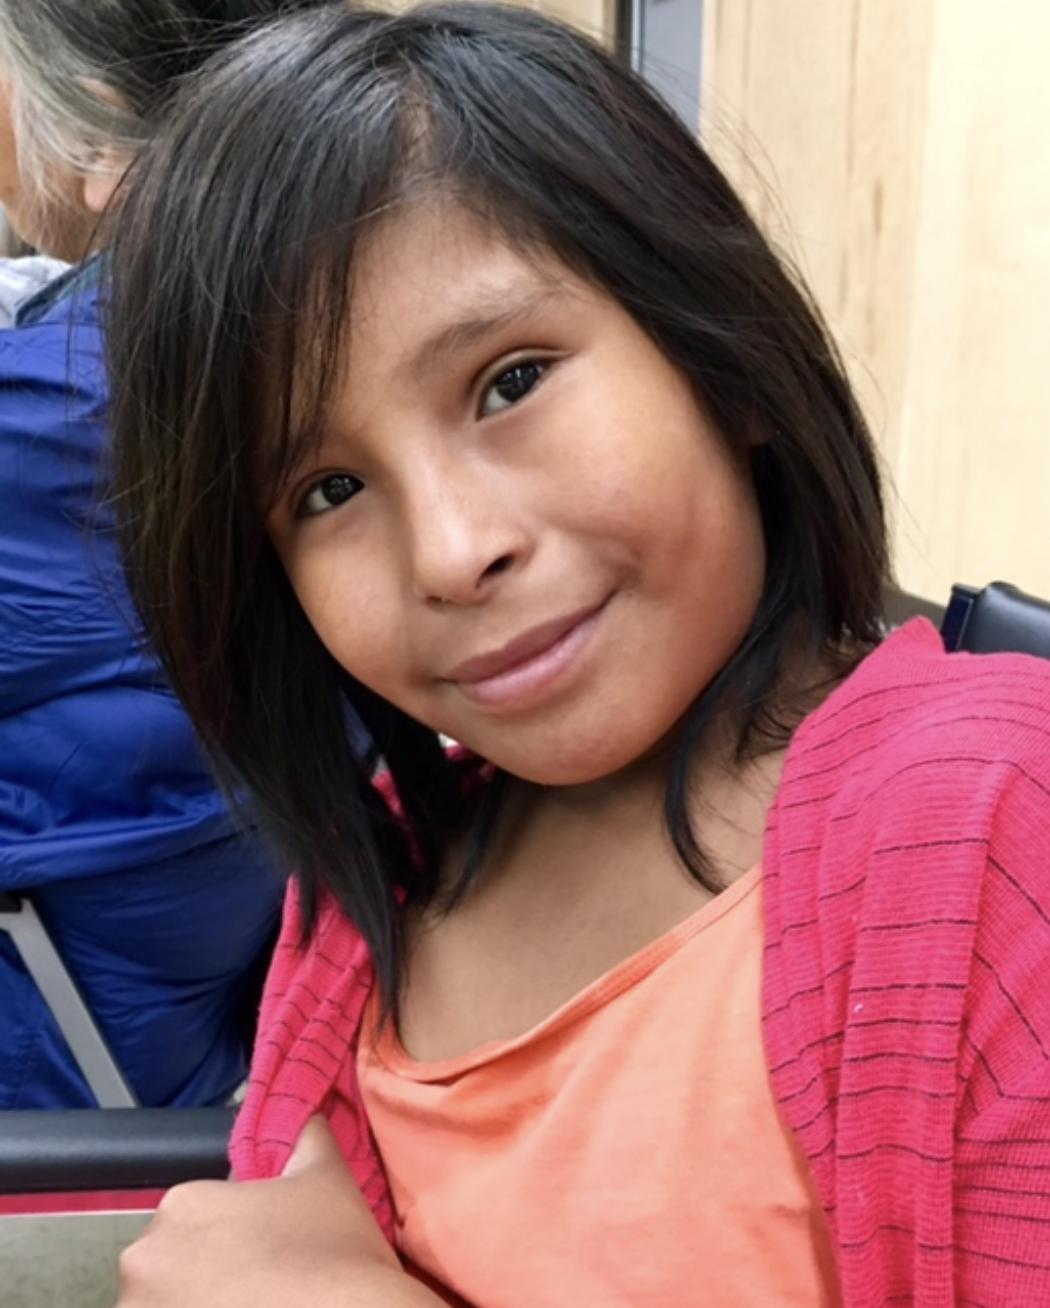 This is Clayla, one of the children that love hanging out at KASKii.Clayla loves to sew and is learning to operate the industrial machines.